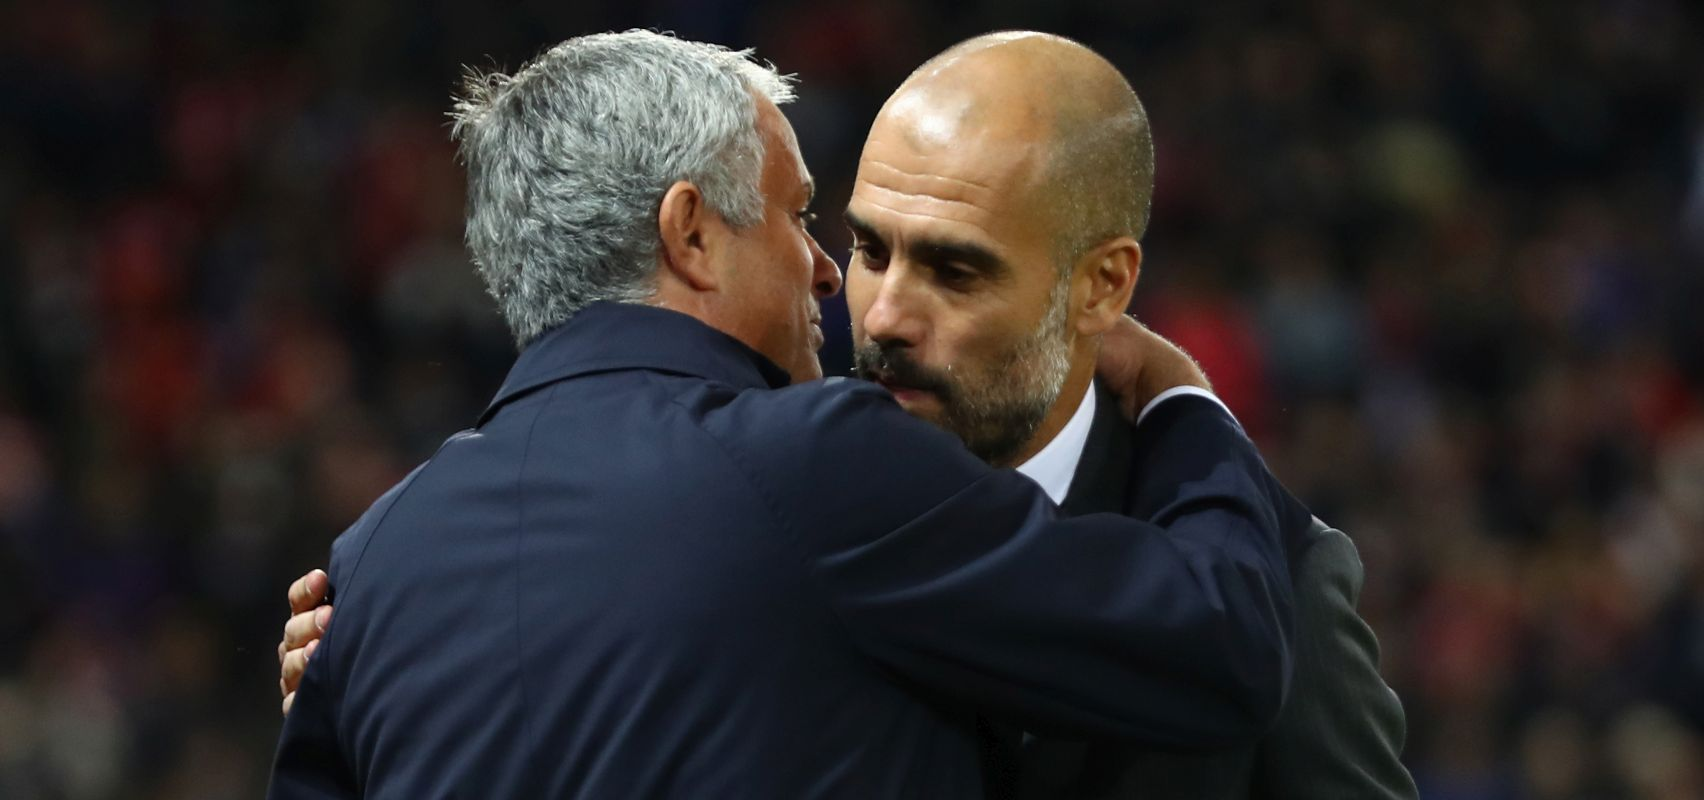 Guardiola gracious in defeat with Mourinho, but the outlook is better for Pep's City, than Jose's United.